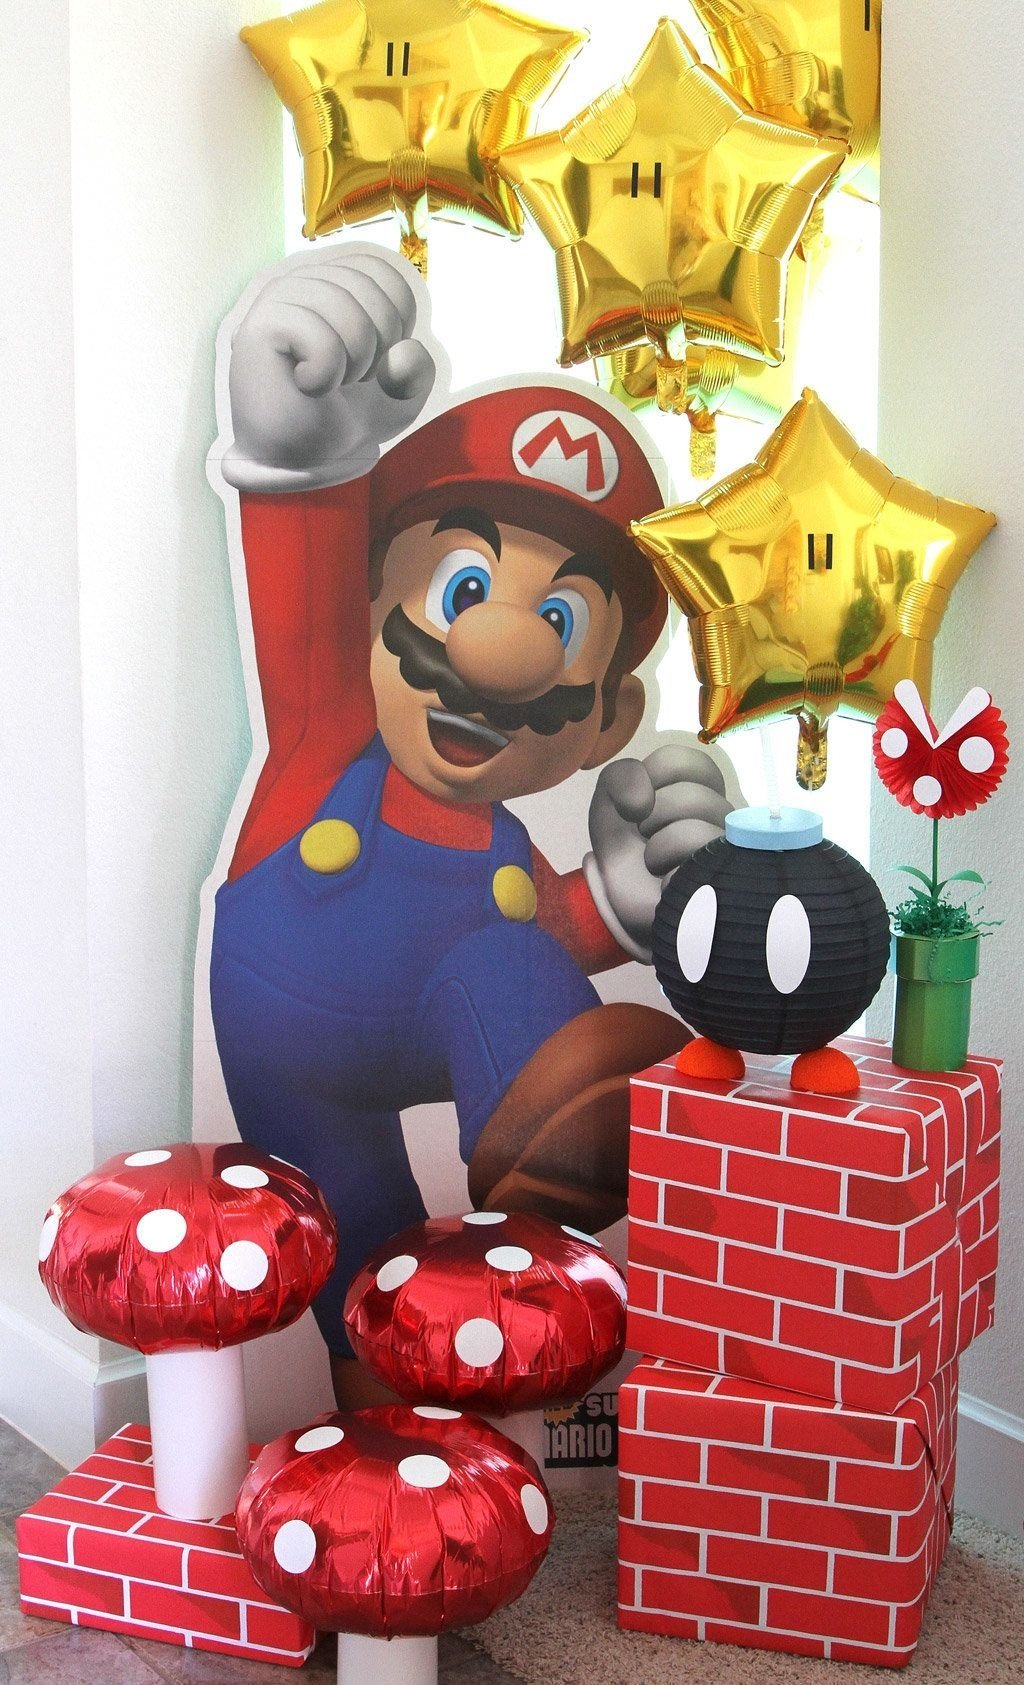 10 Lovely Super Mario Brothers Party Ideas super mario bros party ideas ideas decoracion party kids 2020